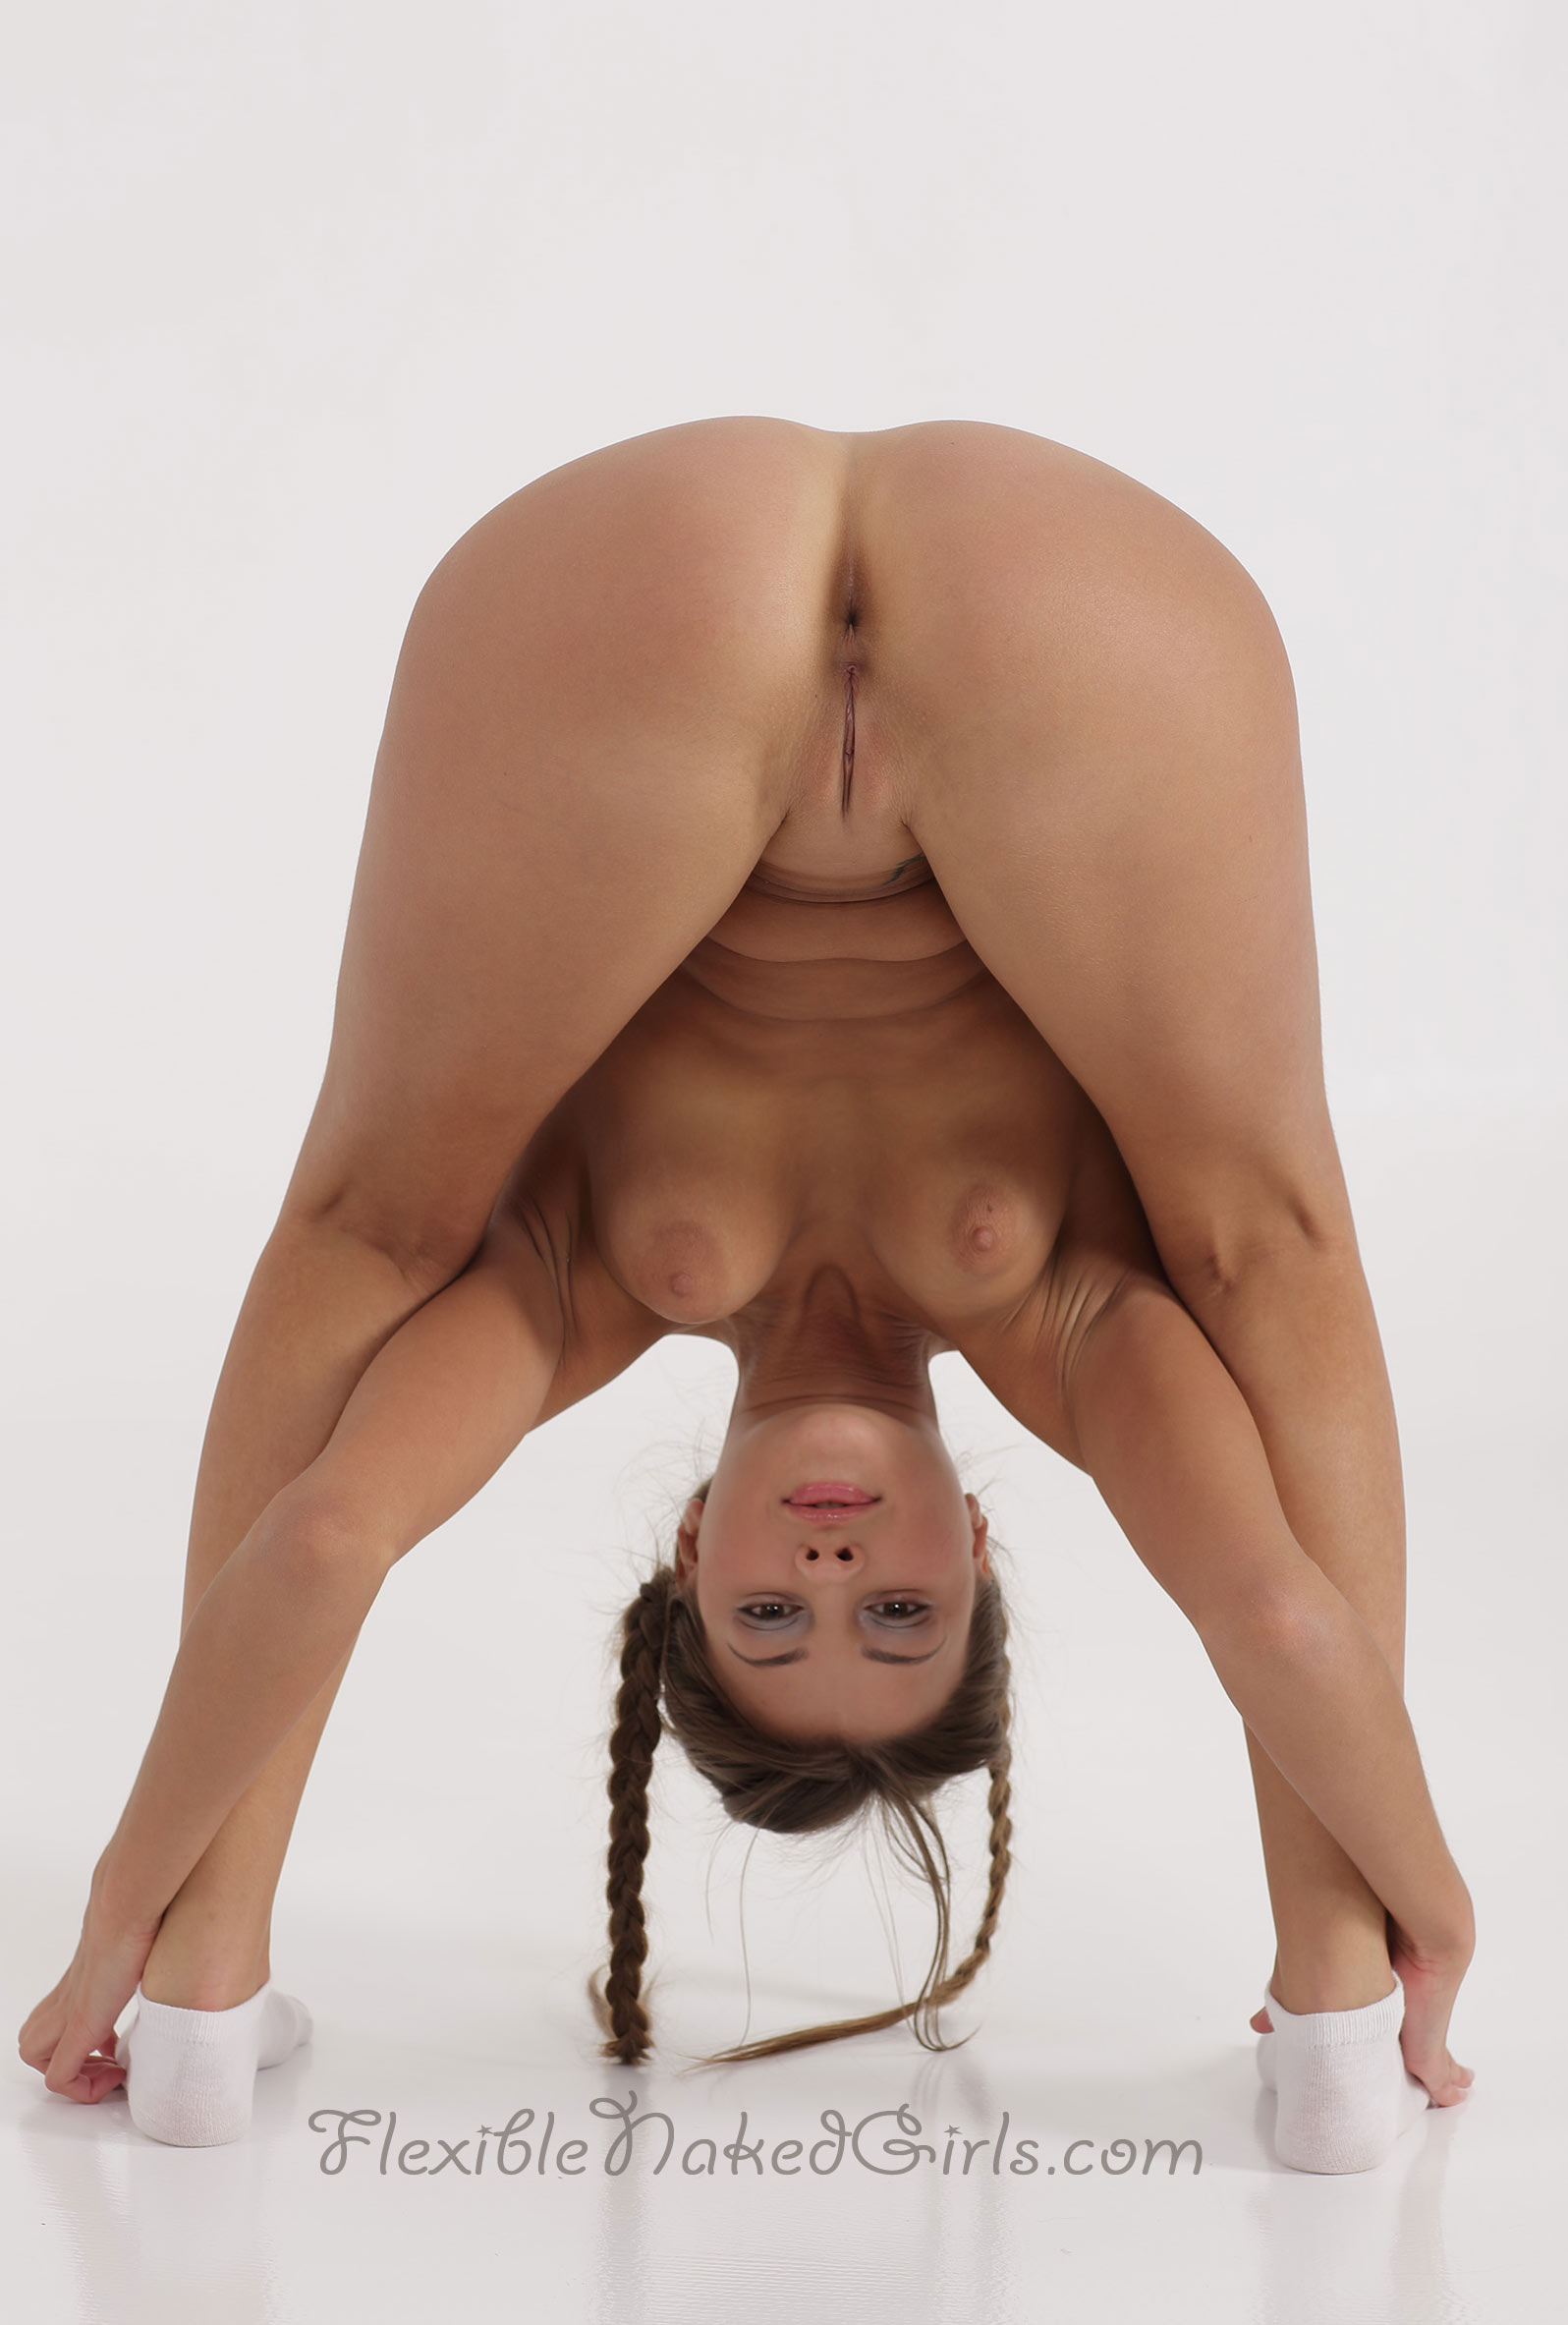 Flexible naked girls